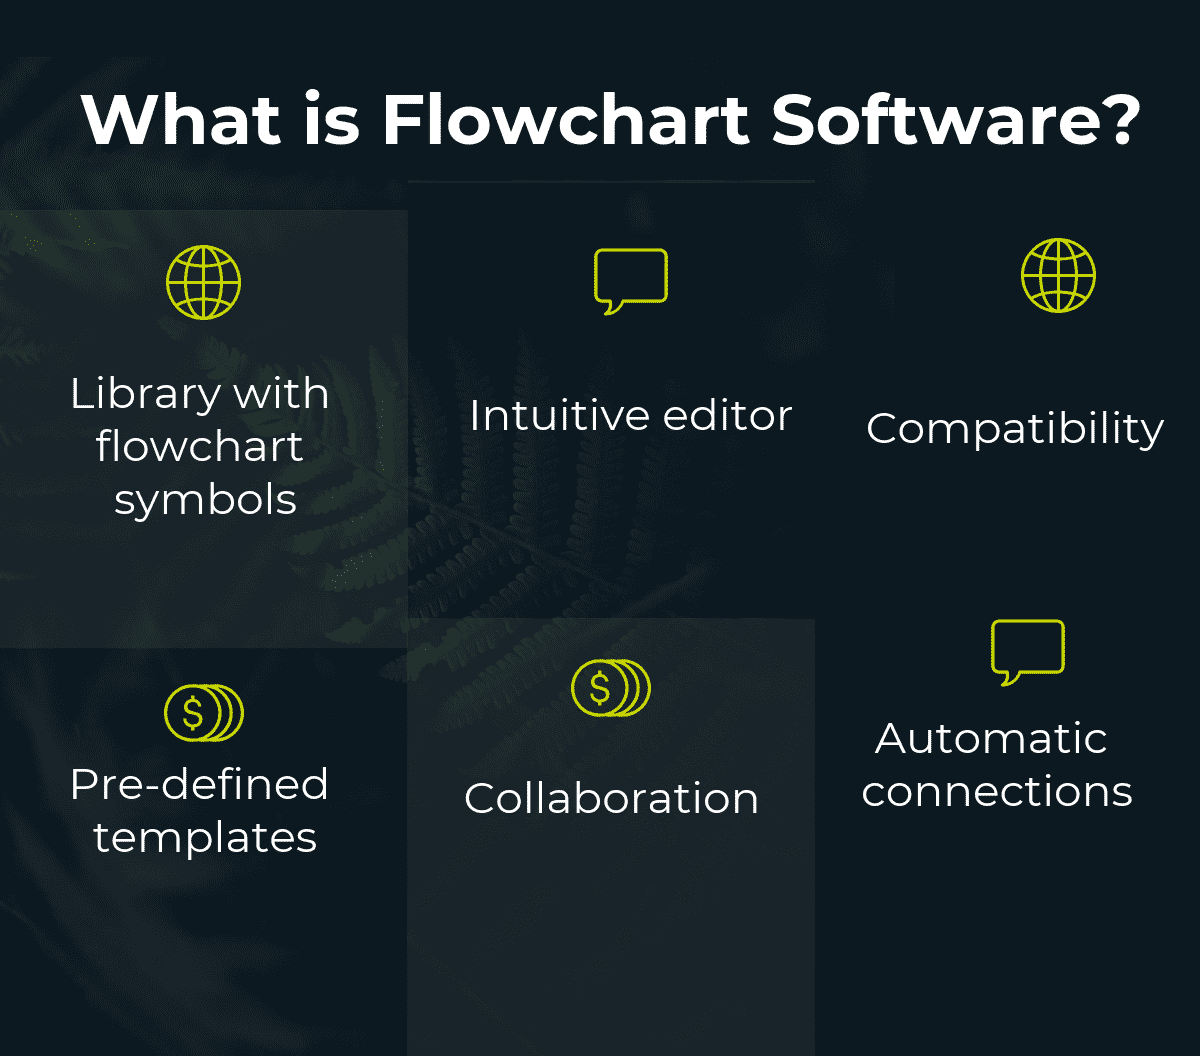 hight resolution of 28 free open source and top flowchart software compare reviews features pricing in 2019 pat research b2b reviews buying guides best practices